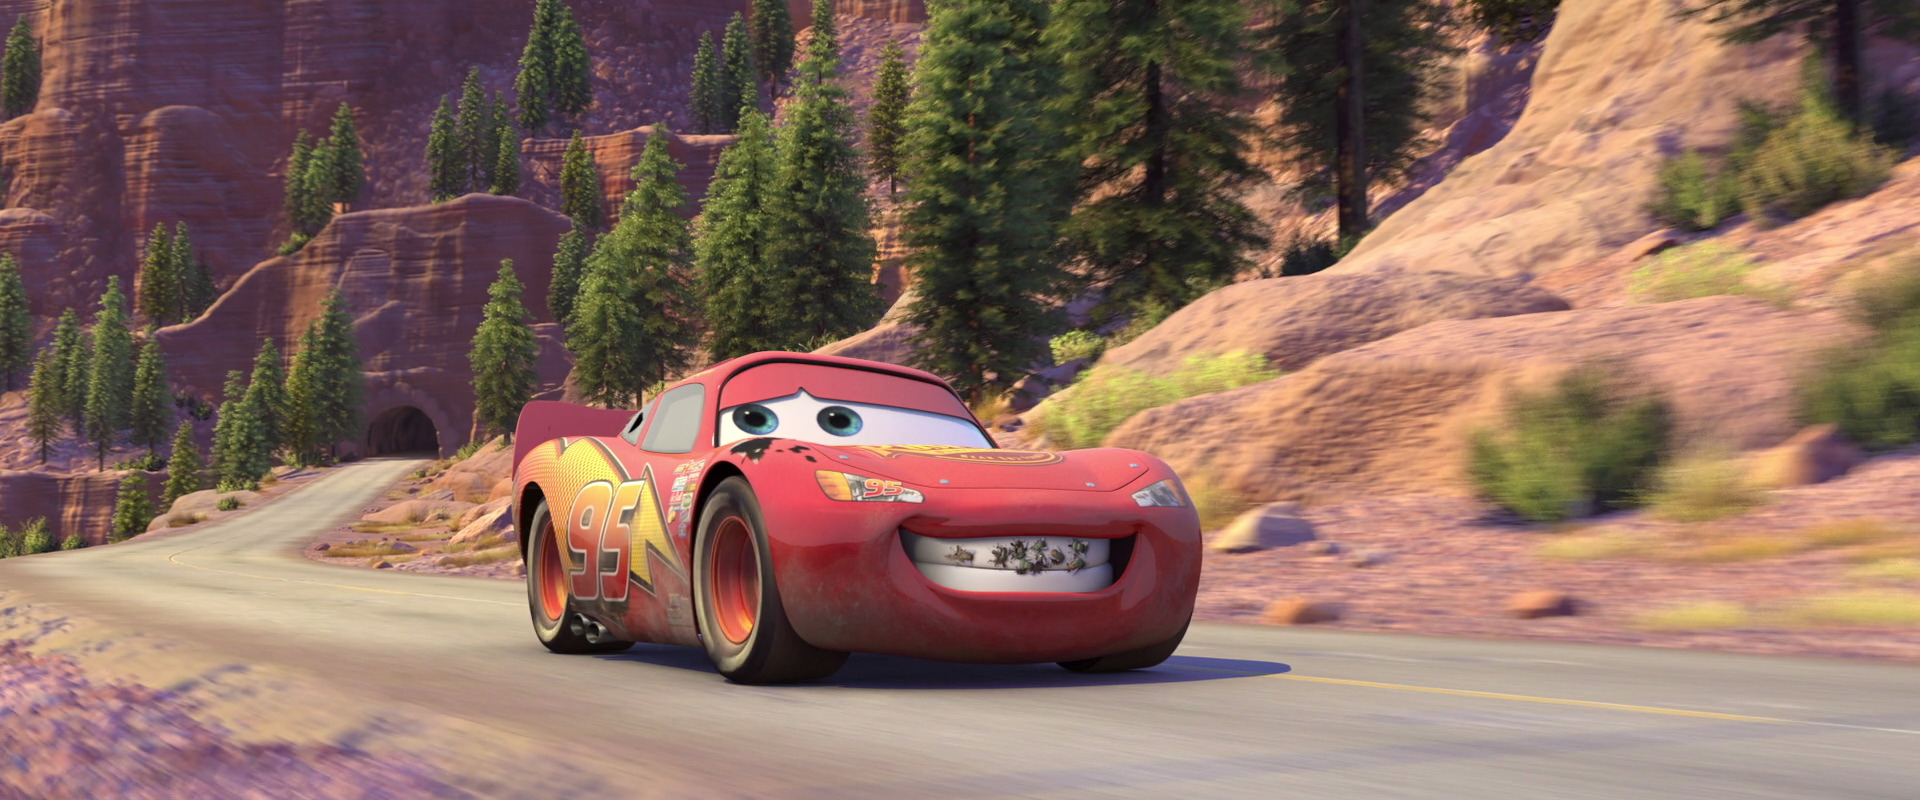 that night mater asks mcqueen to go with him to engage in some fun tractor tipping out in the fields the roar of mcqueens engine causes frank the combine - Mcqueen Flash Mcqueen